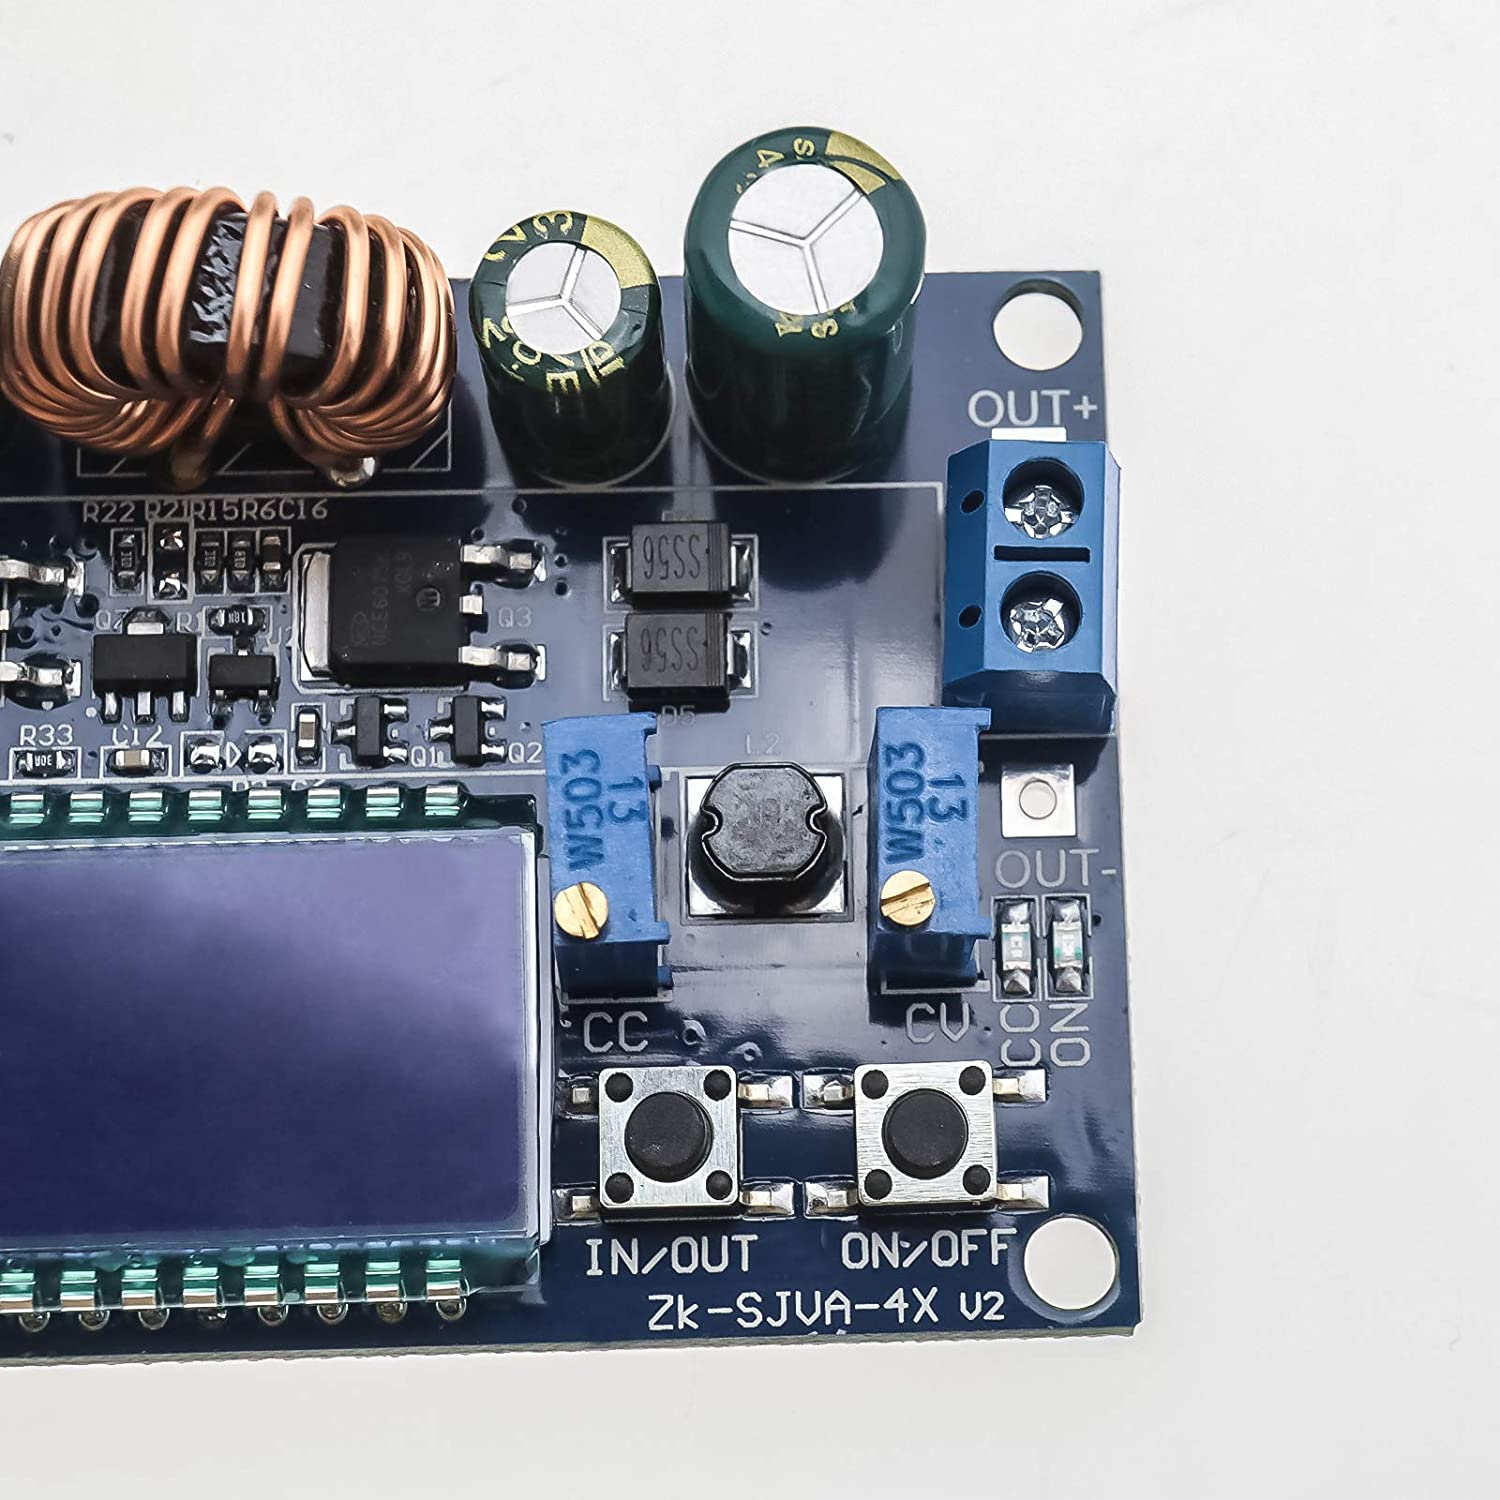 Buck Boost Board Converter Module Adjustable Constant Current Voltage DC 5.5-30V with LCD Display 3A 35W Power Supply Module